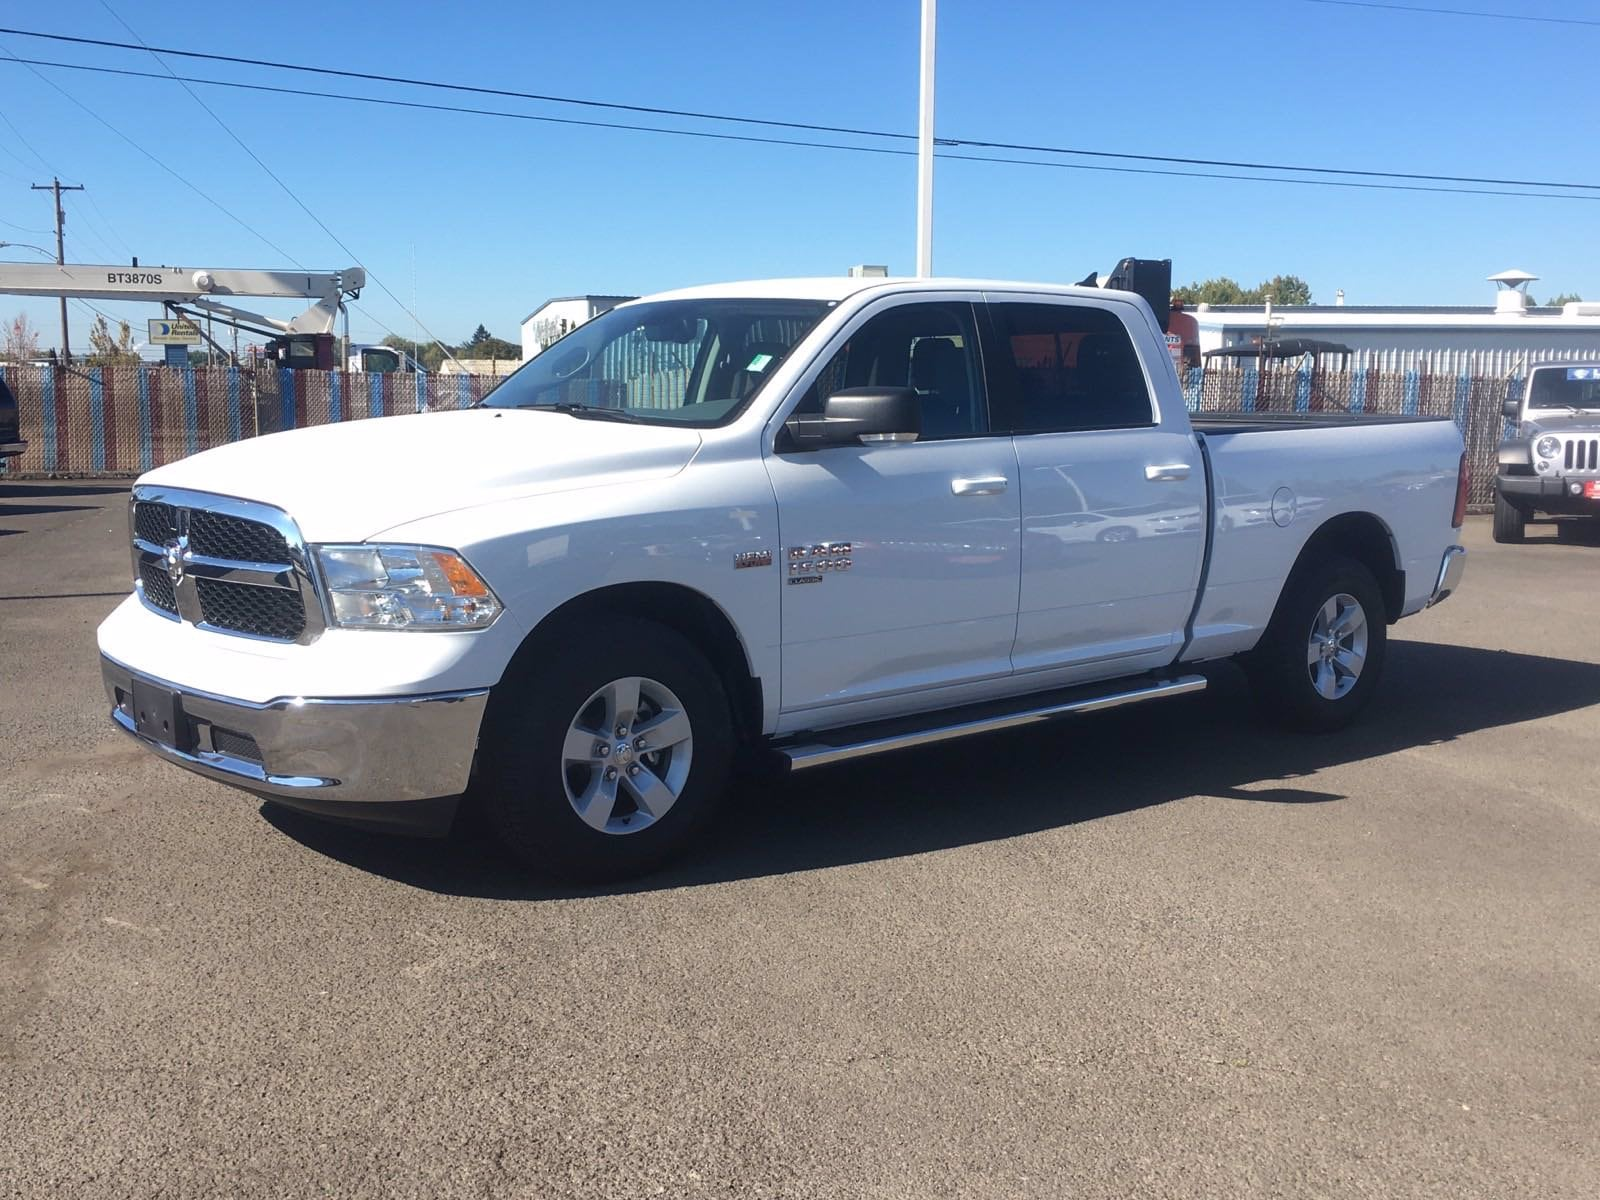 2020 Ram 1500 Crew Cab 4x2, Pickup #B4242 - photo 1